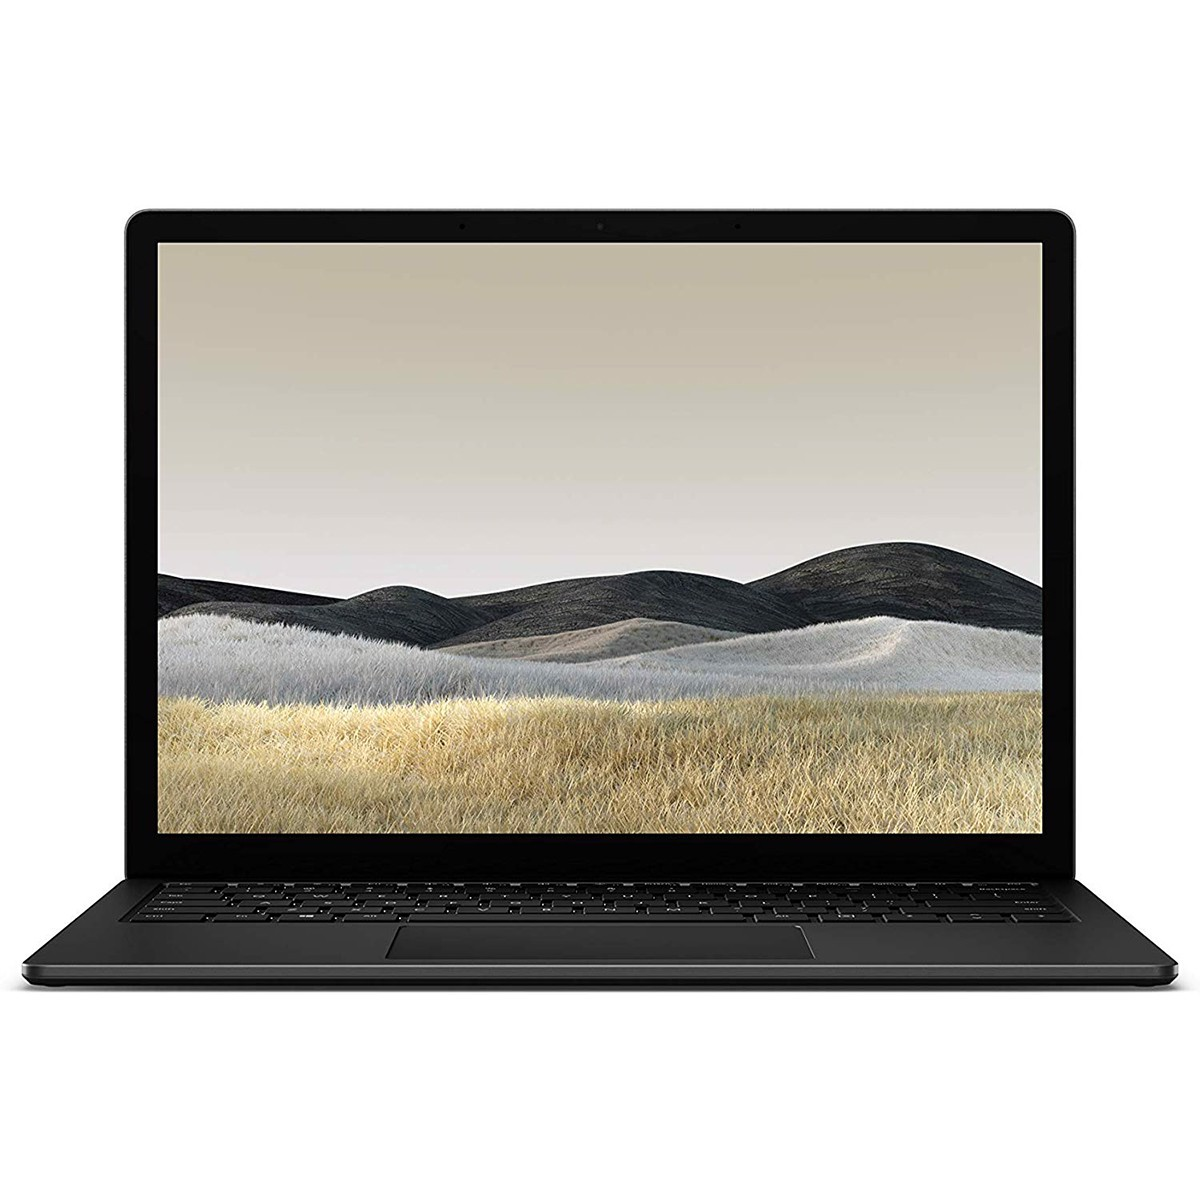 Surface Laptop 3 (15 Inch, 2019) AMD Ryzen 5 3850U / 8GB / 128GB (NEW)